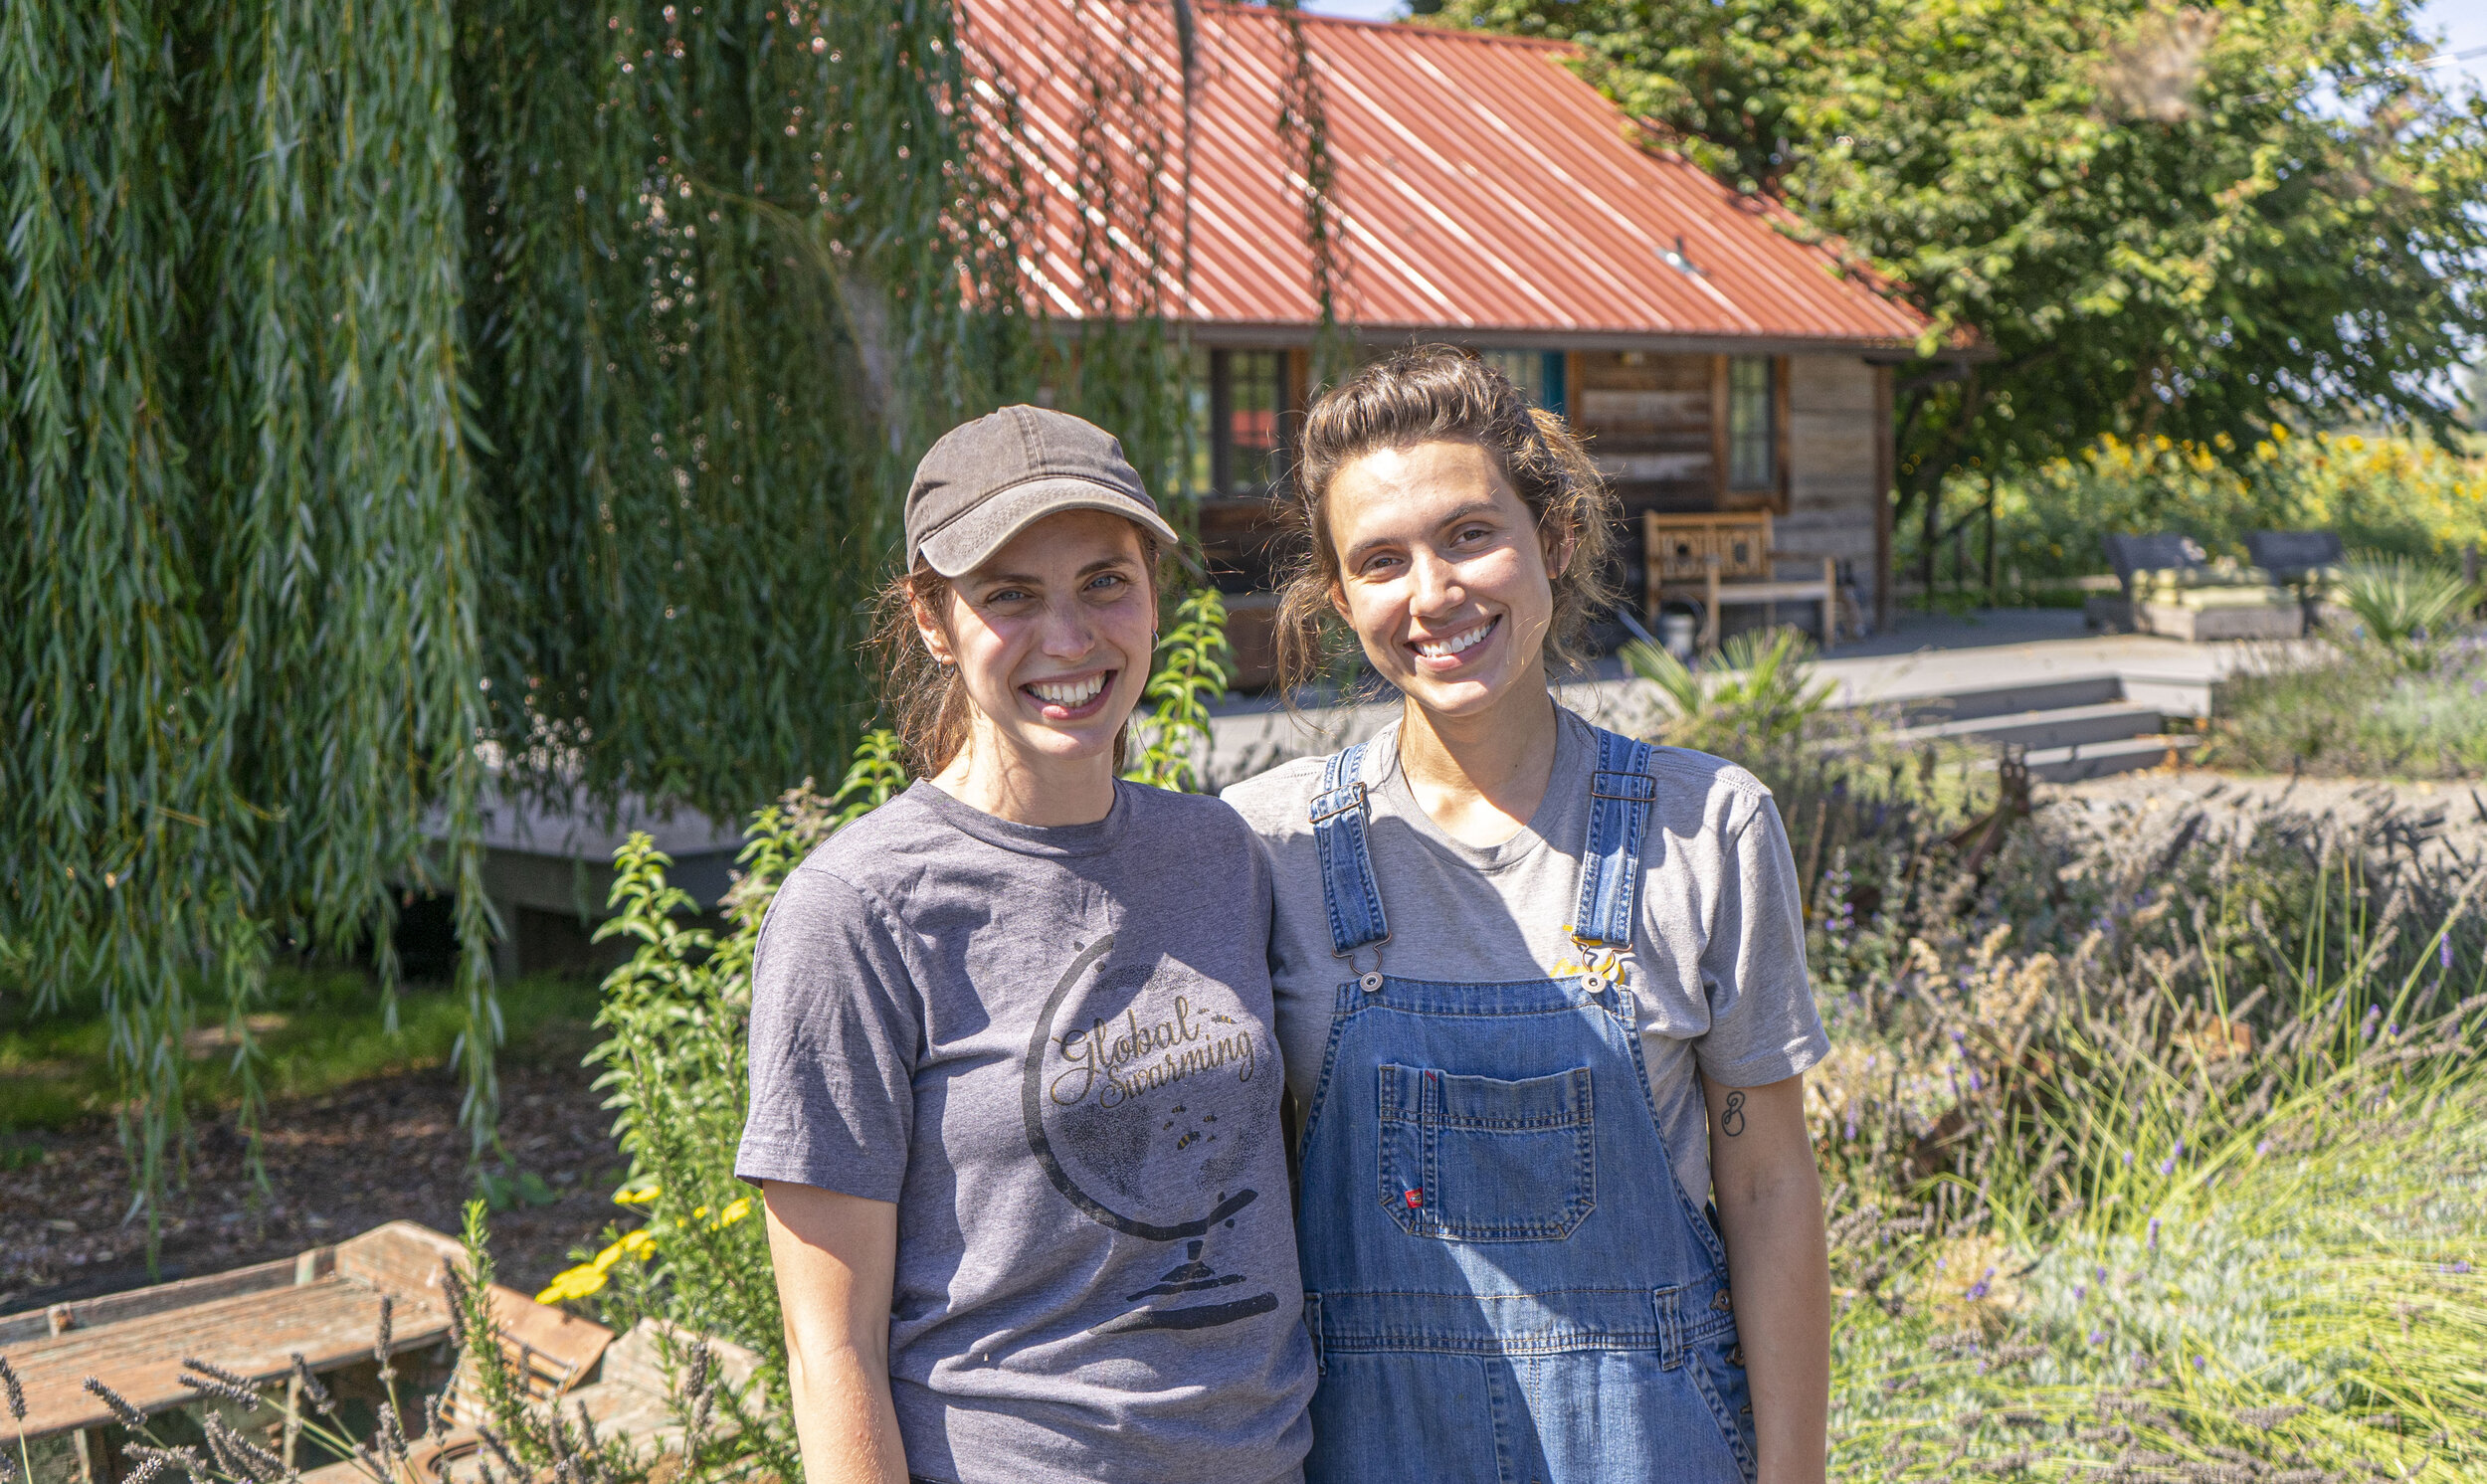 Rebekah and Emma are a part of Bee and Bloom which is an educational group working at the farm